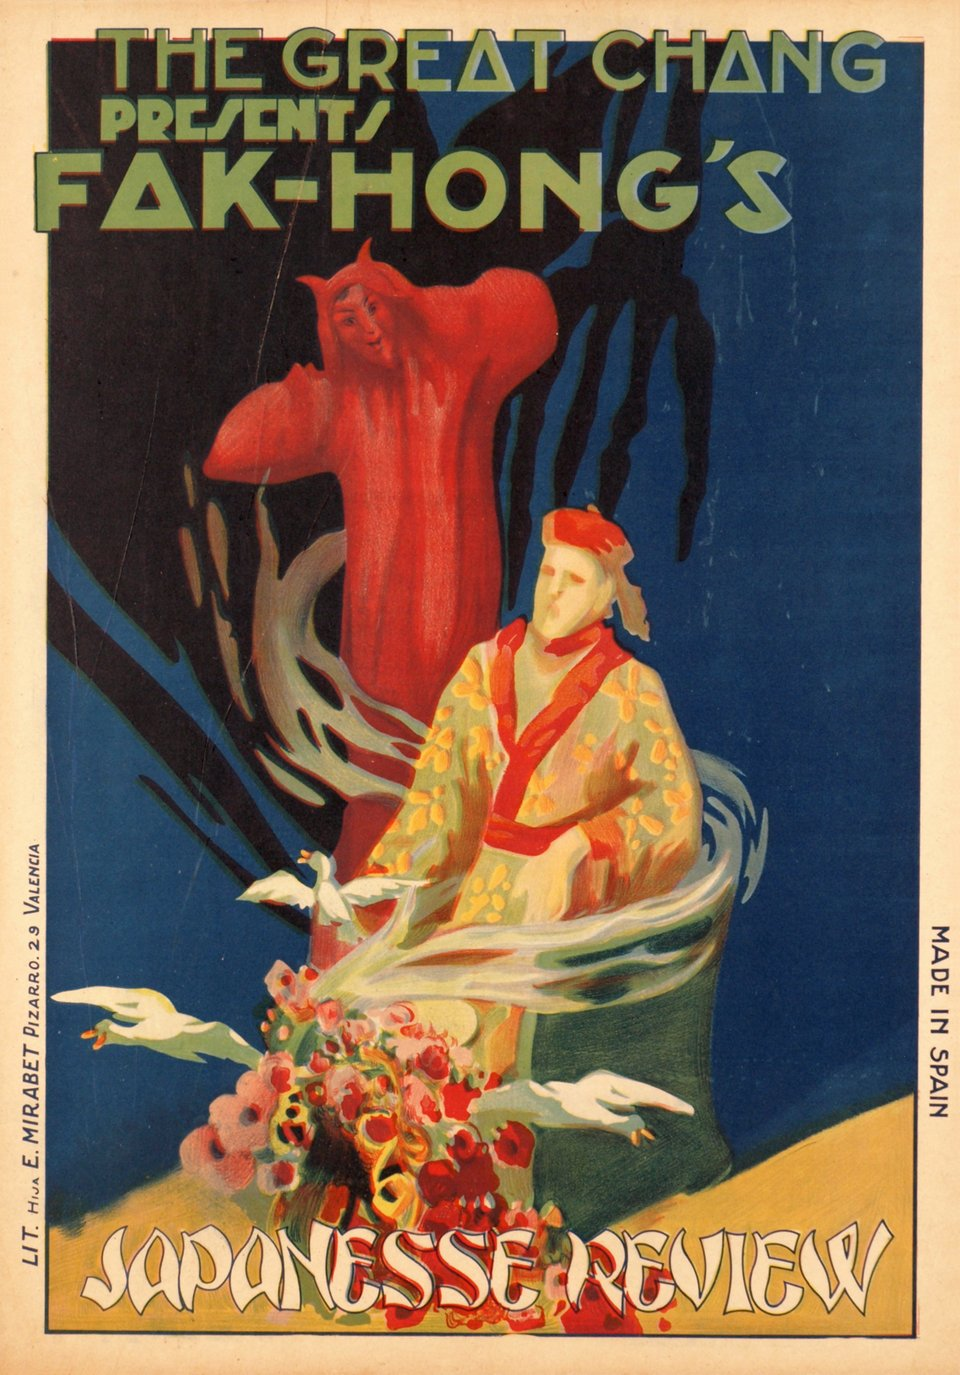 The great Chang presents Fak-Hong's, japanesse review – Affiche ancienne – ANONYME – 1920